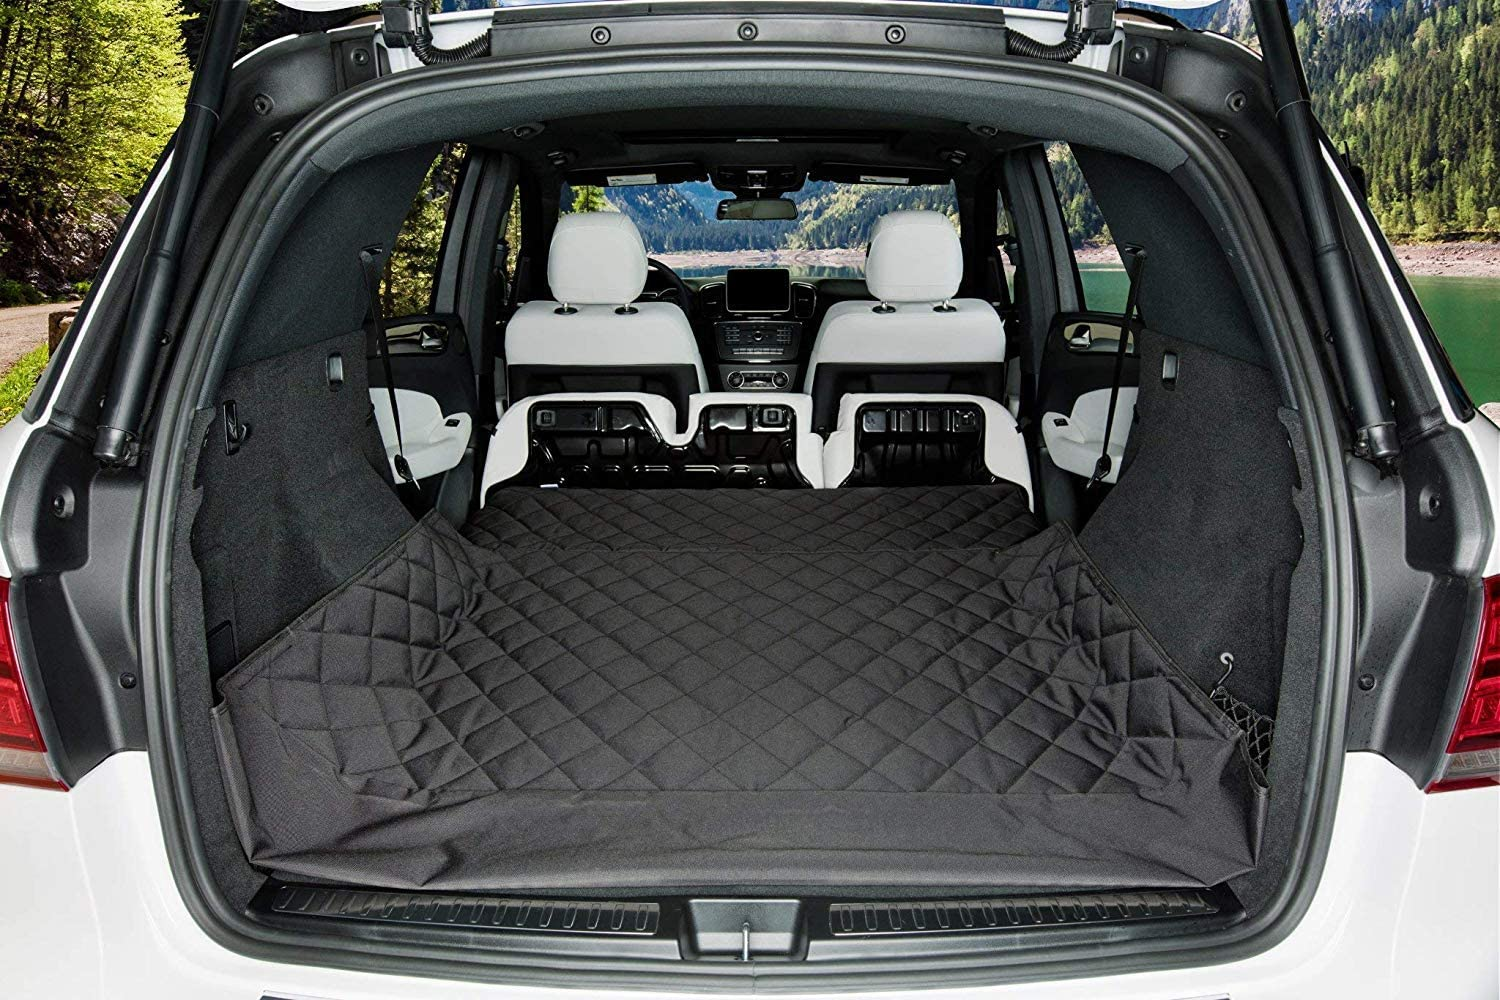 4 Layers Quilted Waterproof Machine Washable /& Nonslip Backing With Bumper Flap Protection For Cars Pet Boot Liner Protector Cover Trucks /& SUVs